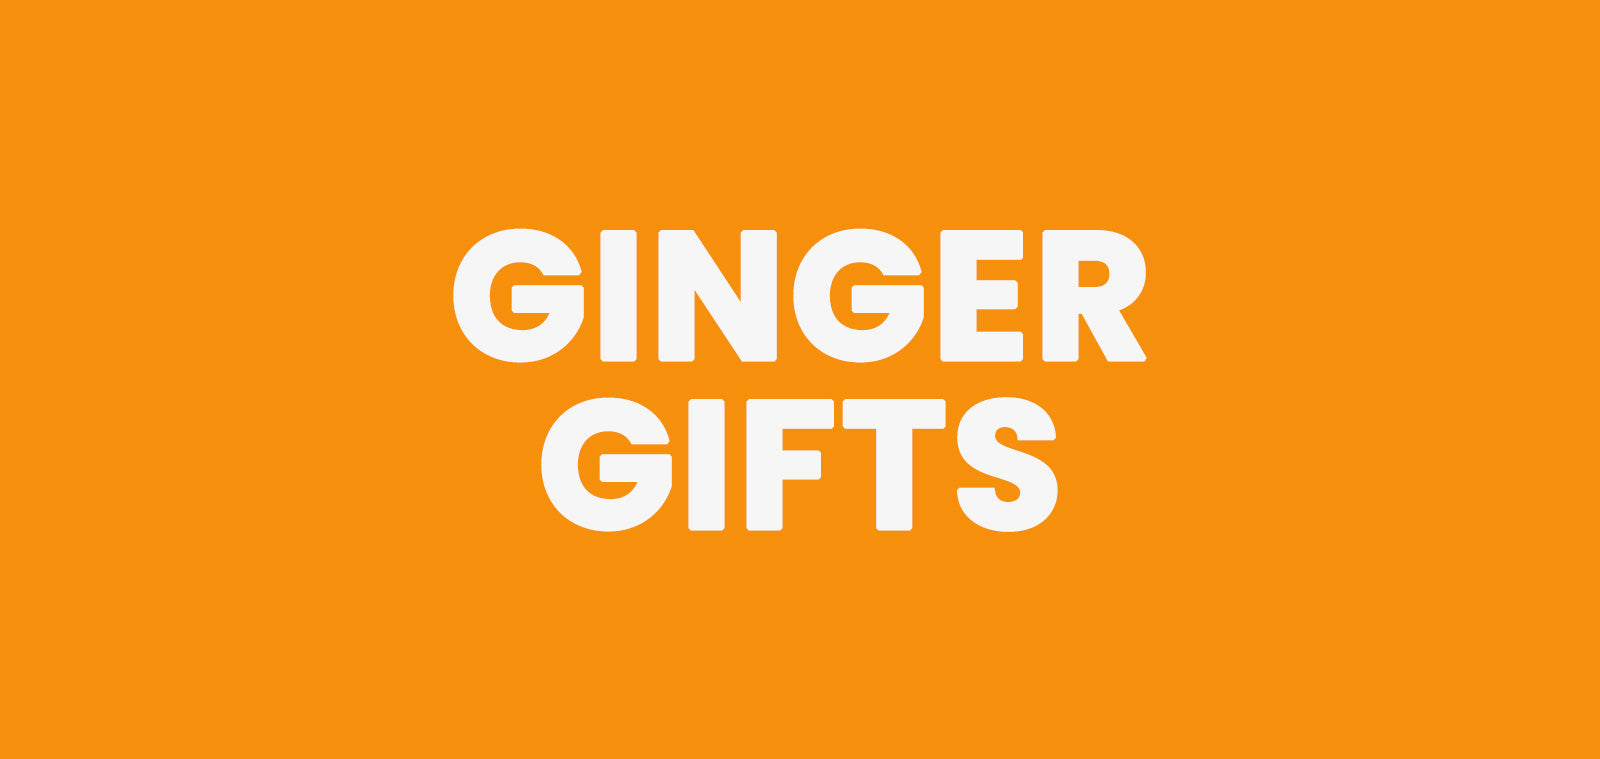 Funny Gifts For Ginger Hair